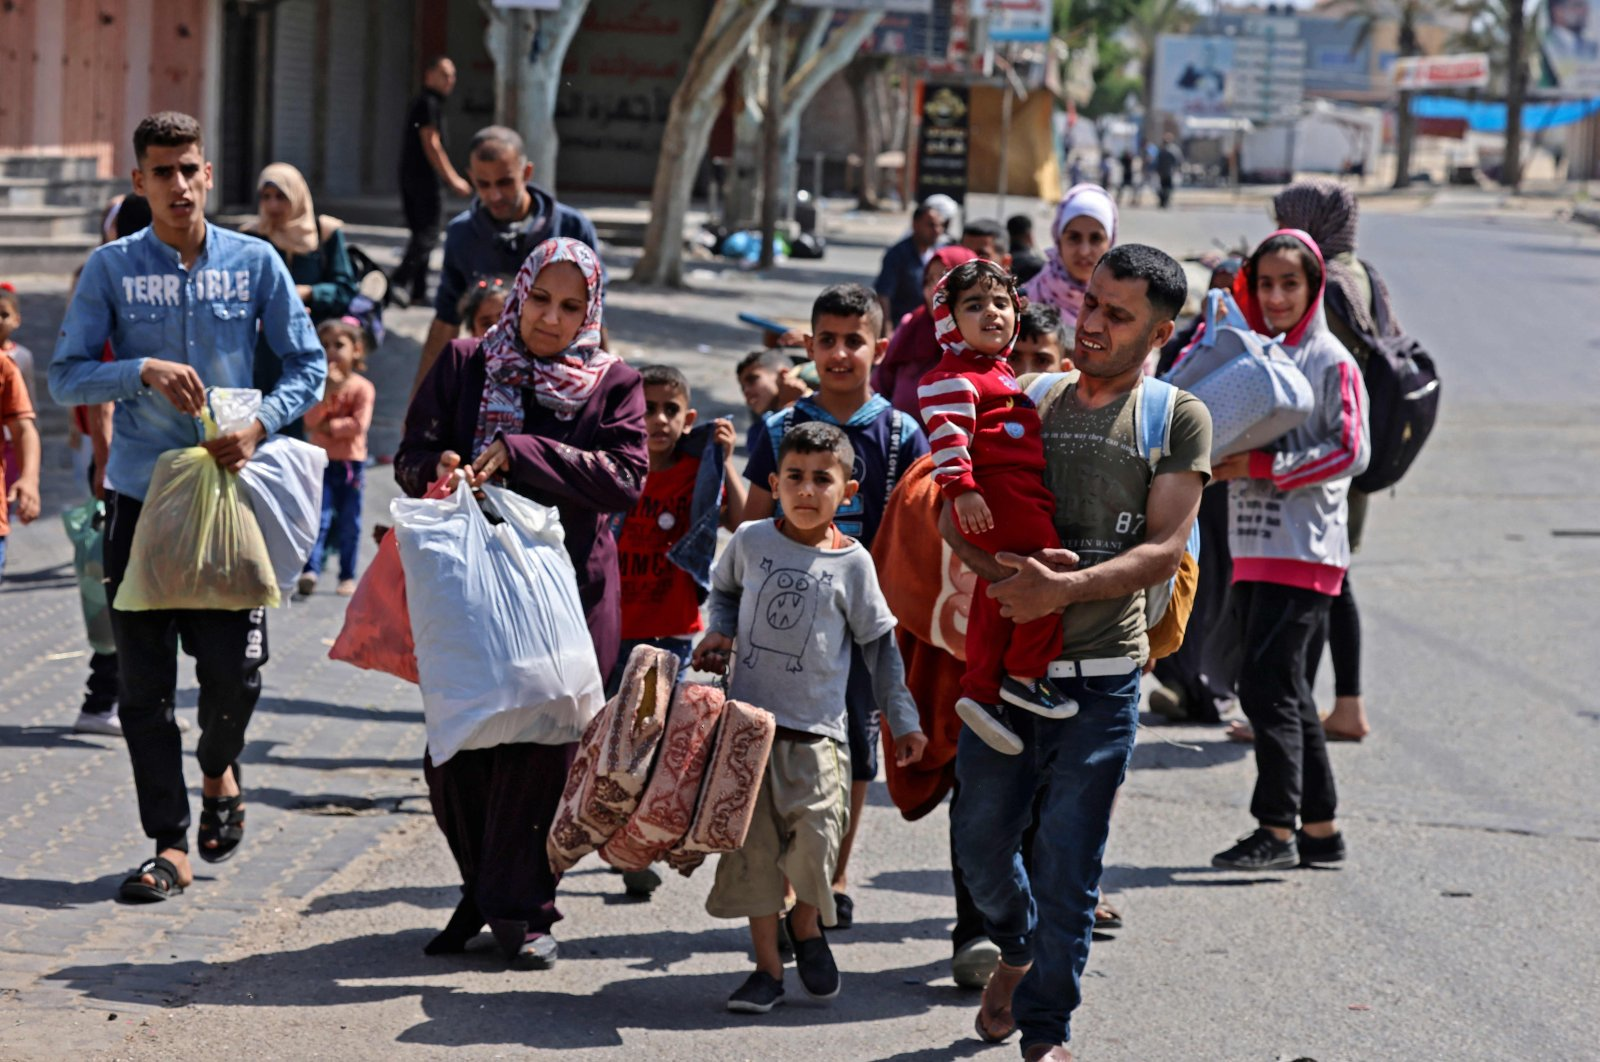 Palestinians carry some of their belongings as they flee Israeli air and artillery strikes in Beit Hanun in the northern Gaza Strip, Palestine, on May 14, 2021. (AFP Photo)